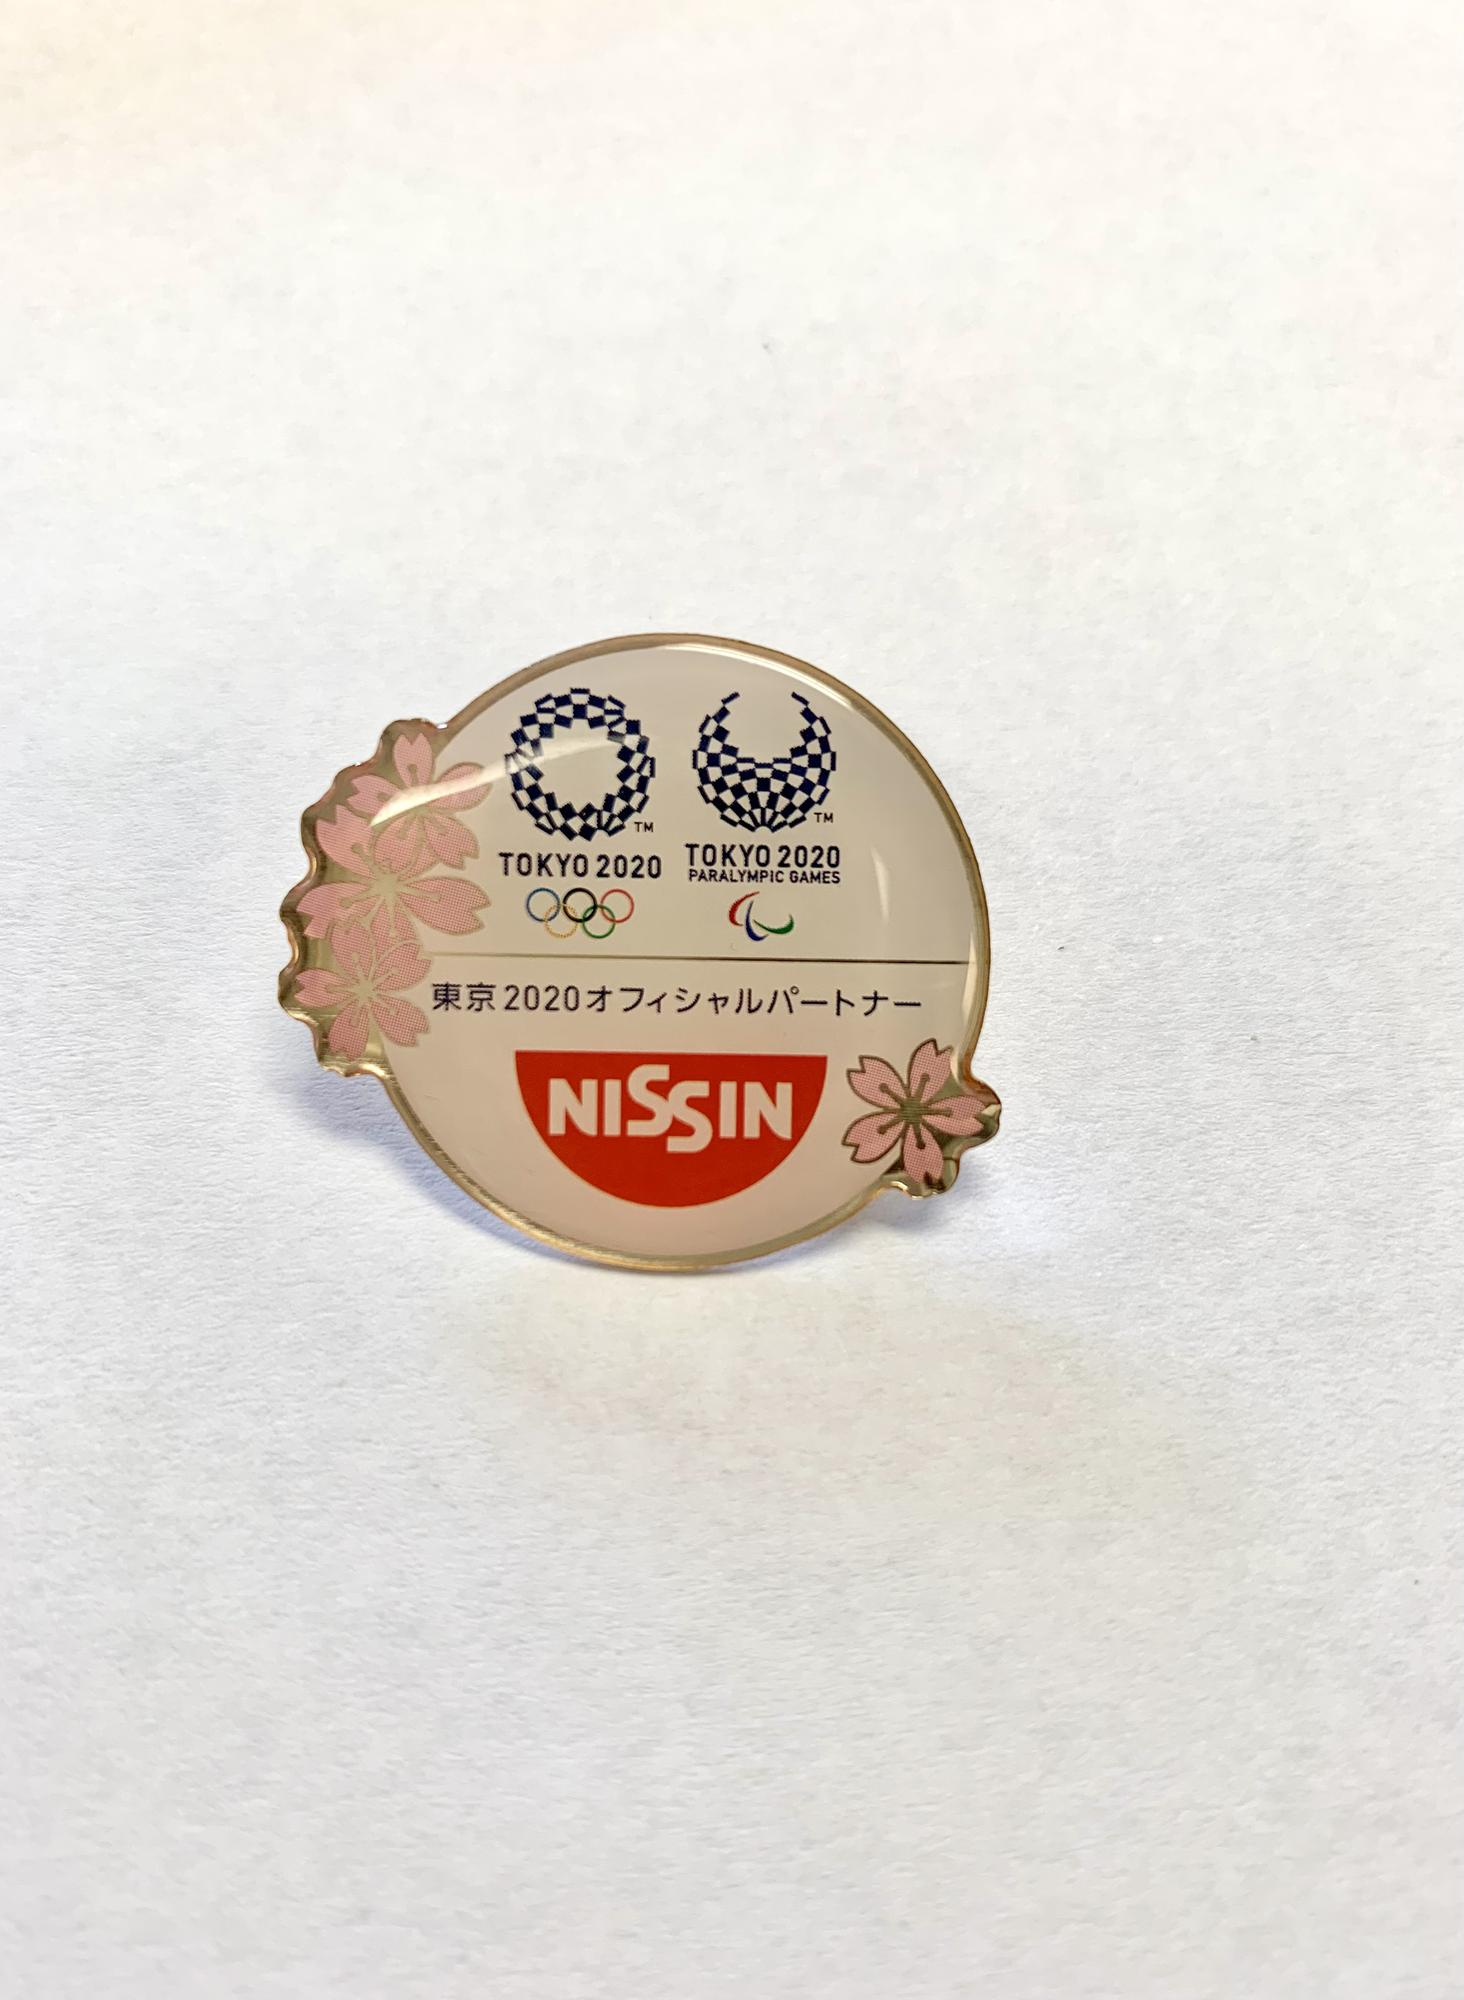 Round Nissin w/Pink Flowers, Tokyo 2020 Olympic/Paralympic Logo